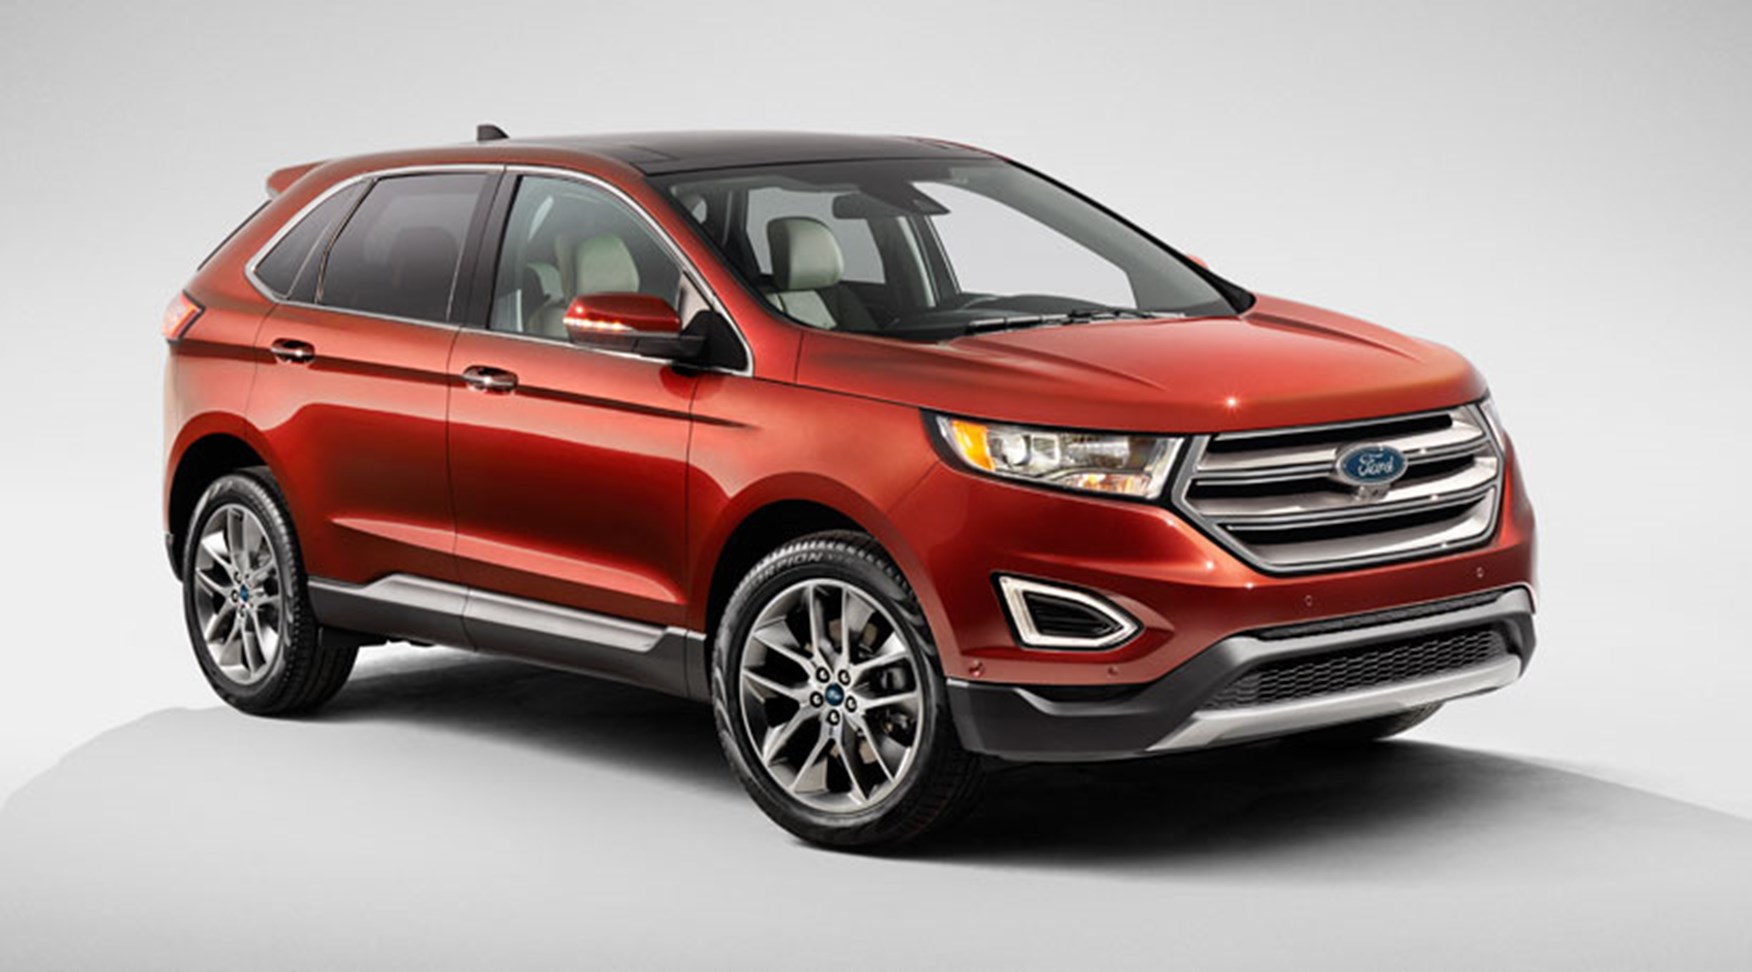 Image Result For Ford Edge For Sale Uk